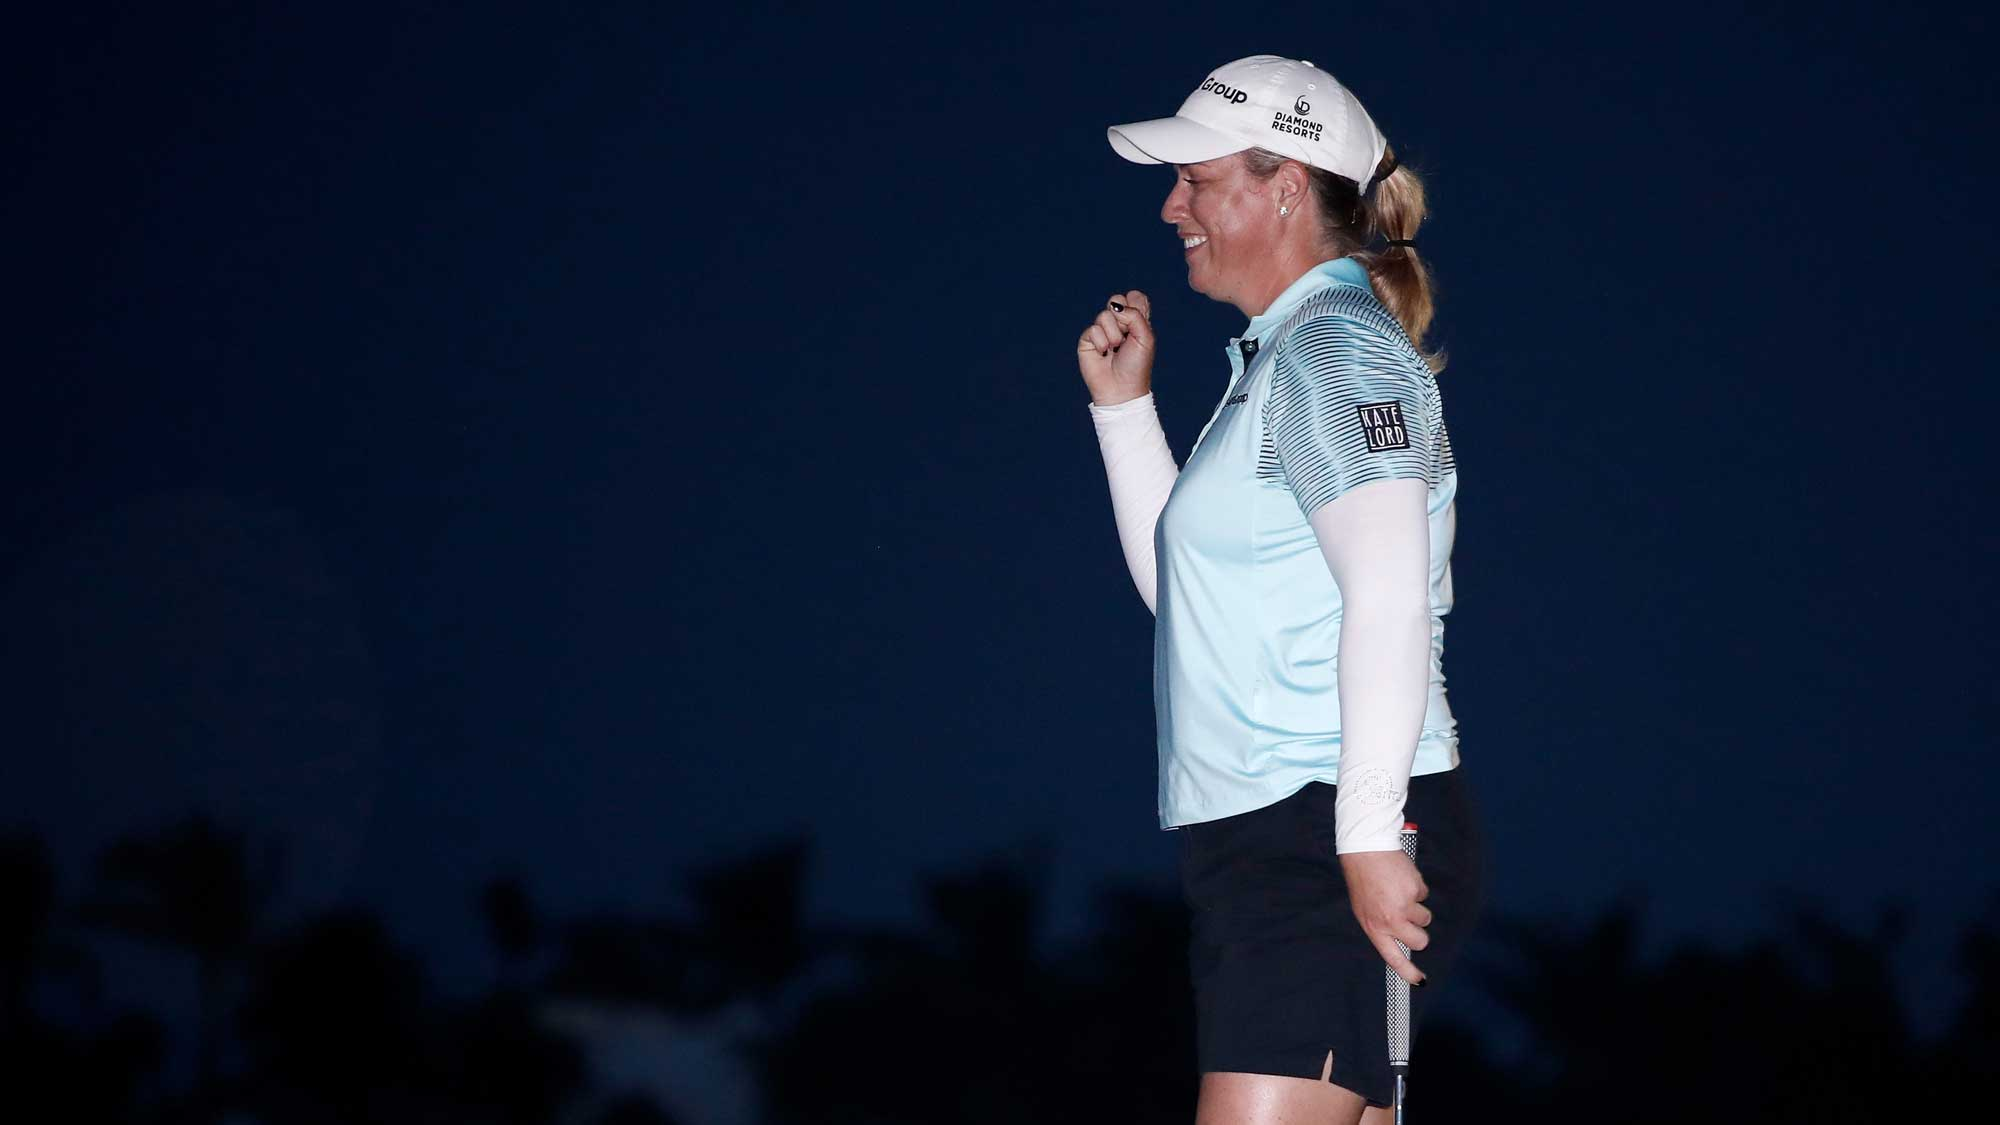 Brittany Lincicome celebrates after putting out on the 18th hole to win the Pure Silk Bahamas LPGA Classic